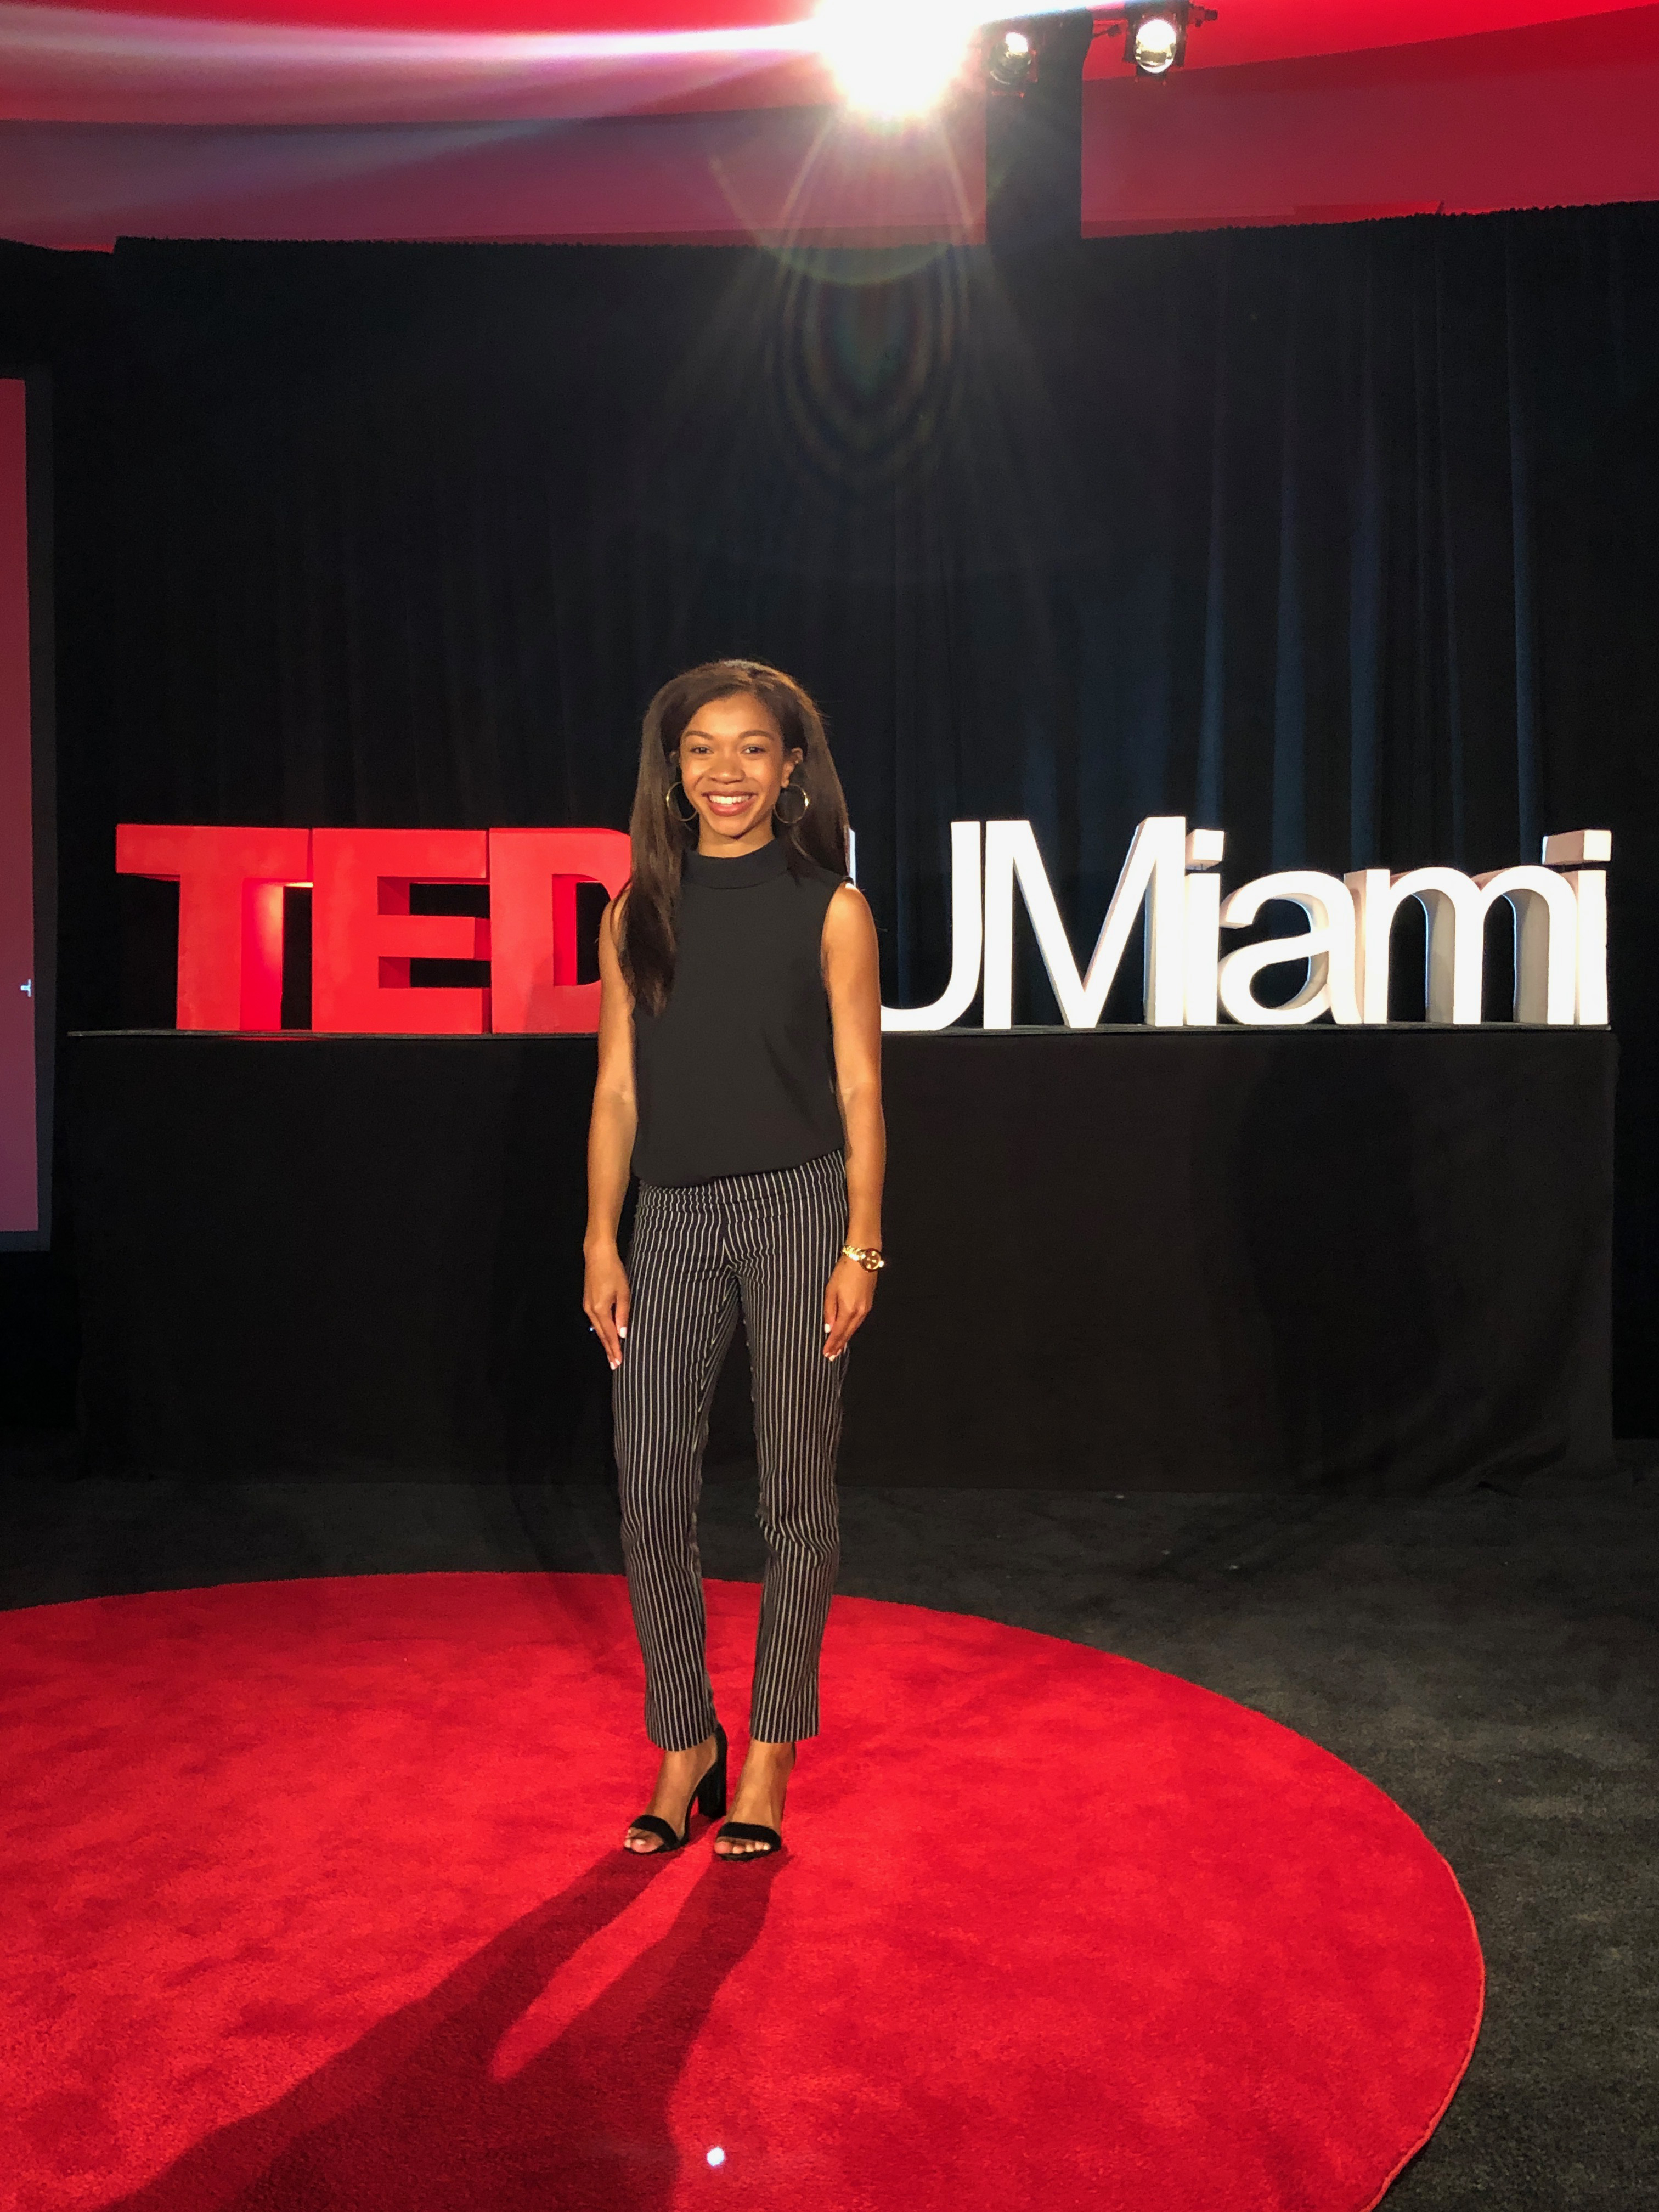 Breana Ross posing for a photo on stage for her TEDx talk.